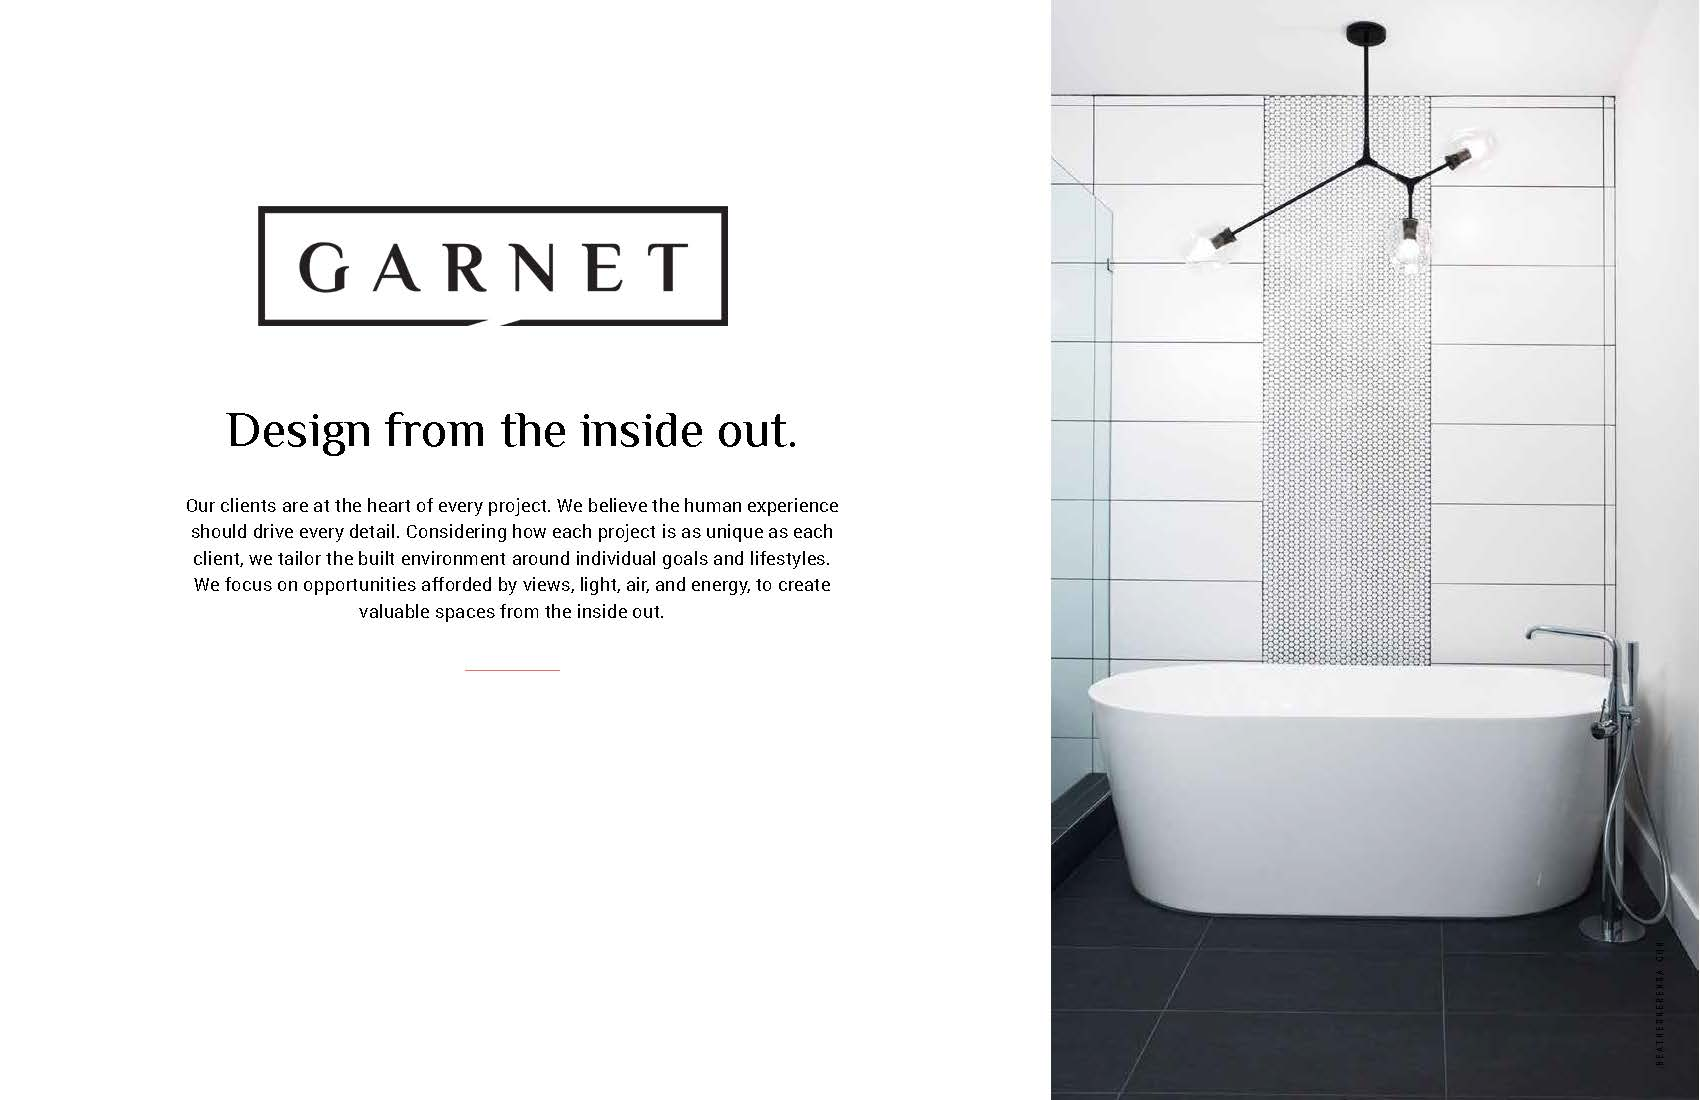 GARNET DESIGN STUDIO: BRAND DEVELOPMENT, CONTENT STRATEGY, COPYWRITING, PHOTOGRAPHY, WEBSITE DESIGN AND BRAND IDENTITY IN COLLABORATION WITH DESIGNER  HEATHER CURTIS